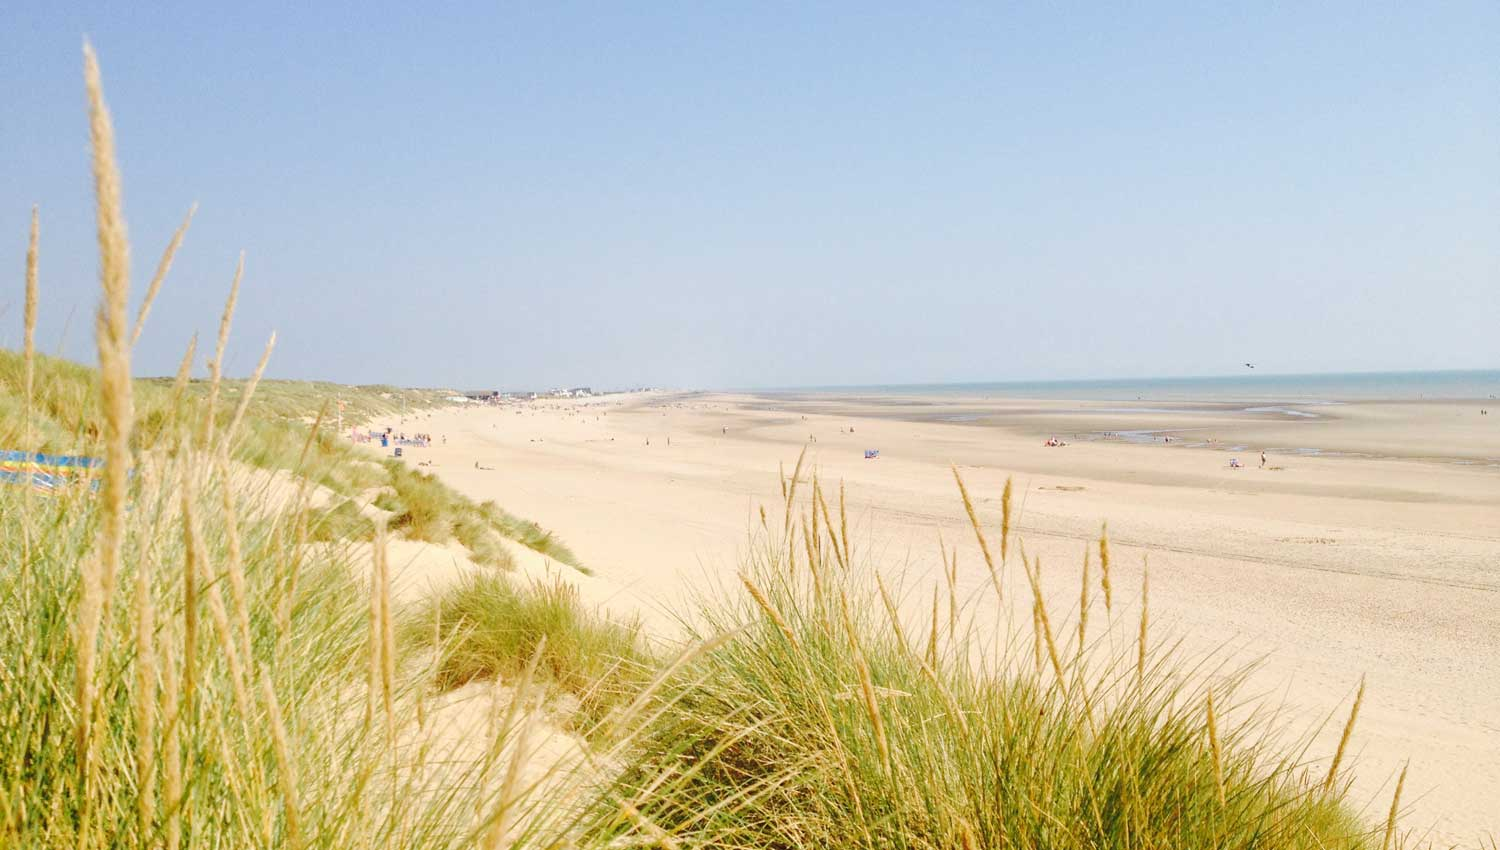 Owlers Retreat Camber Sands Holiday Cottage - Slider - 7km stretch of golden sand 1 minute walk along a sandy lane